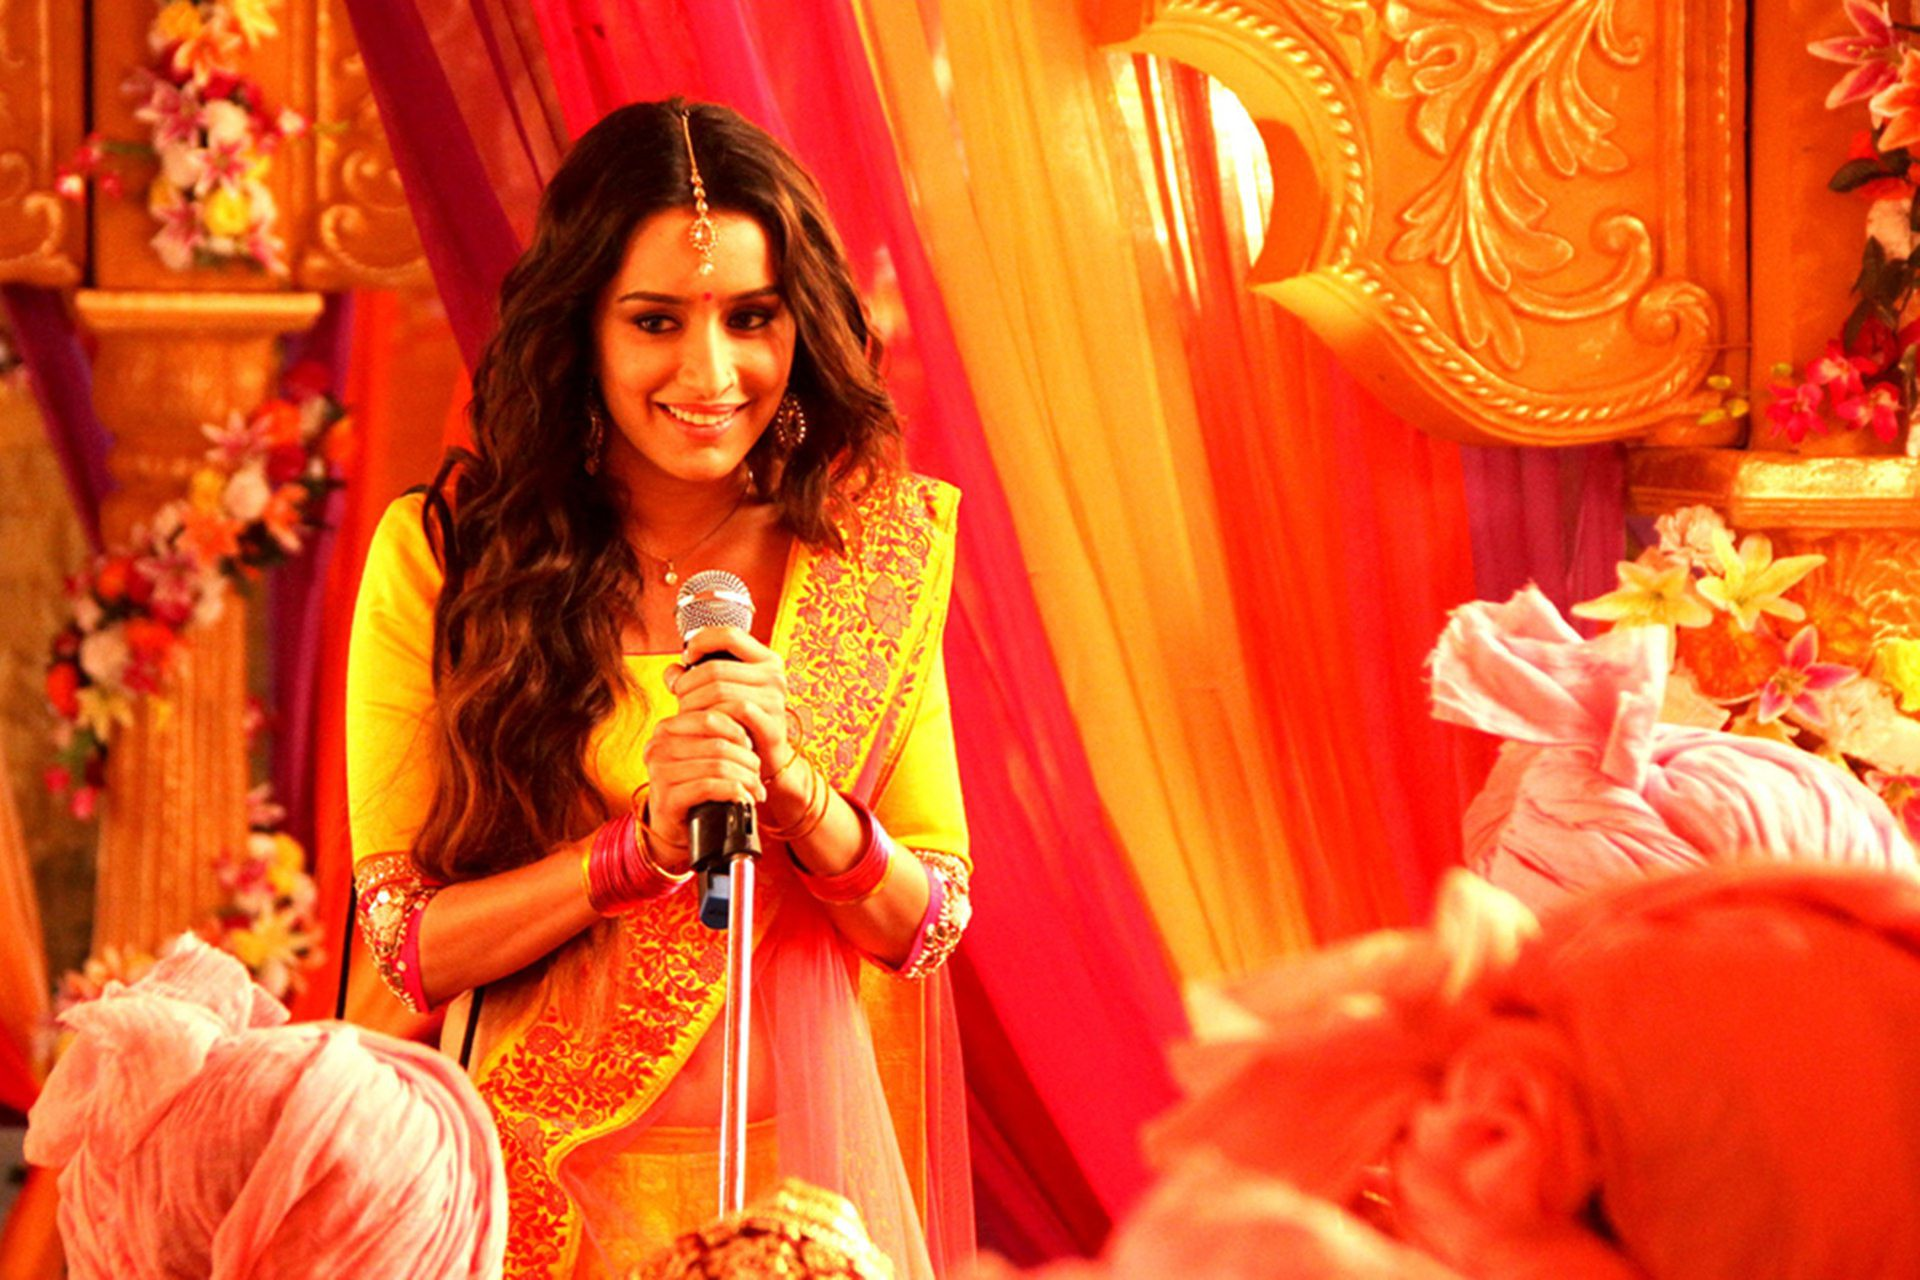 Shraddha Kapoor Cute HD Wallpapers 2014 1920x1280